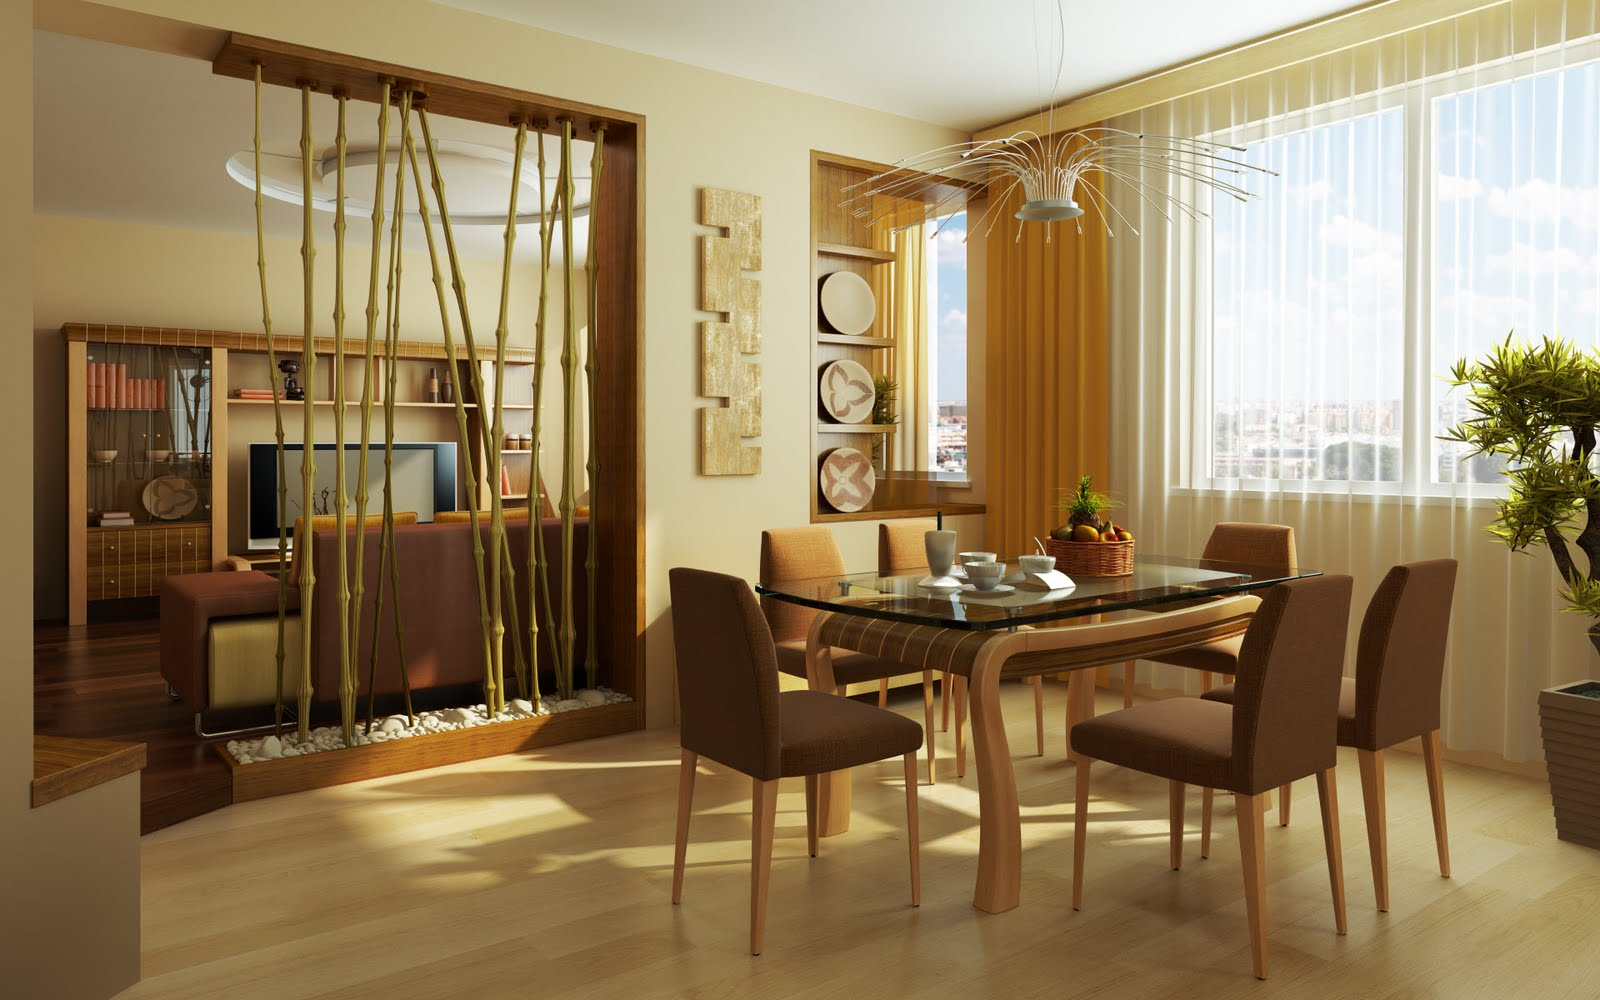 Top Dining Room Interior Design Ideas 1600 x 1000 · 193 kB · jpeg